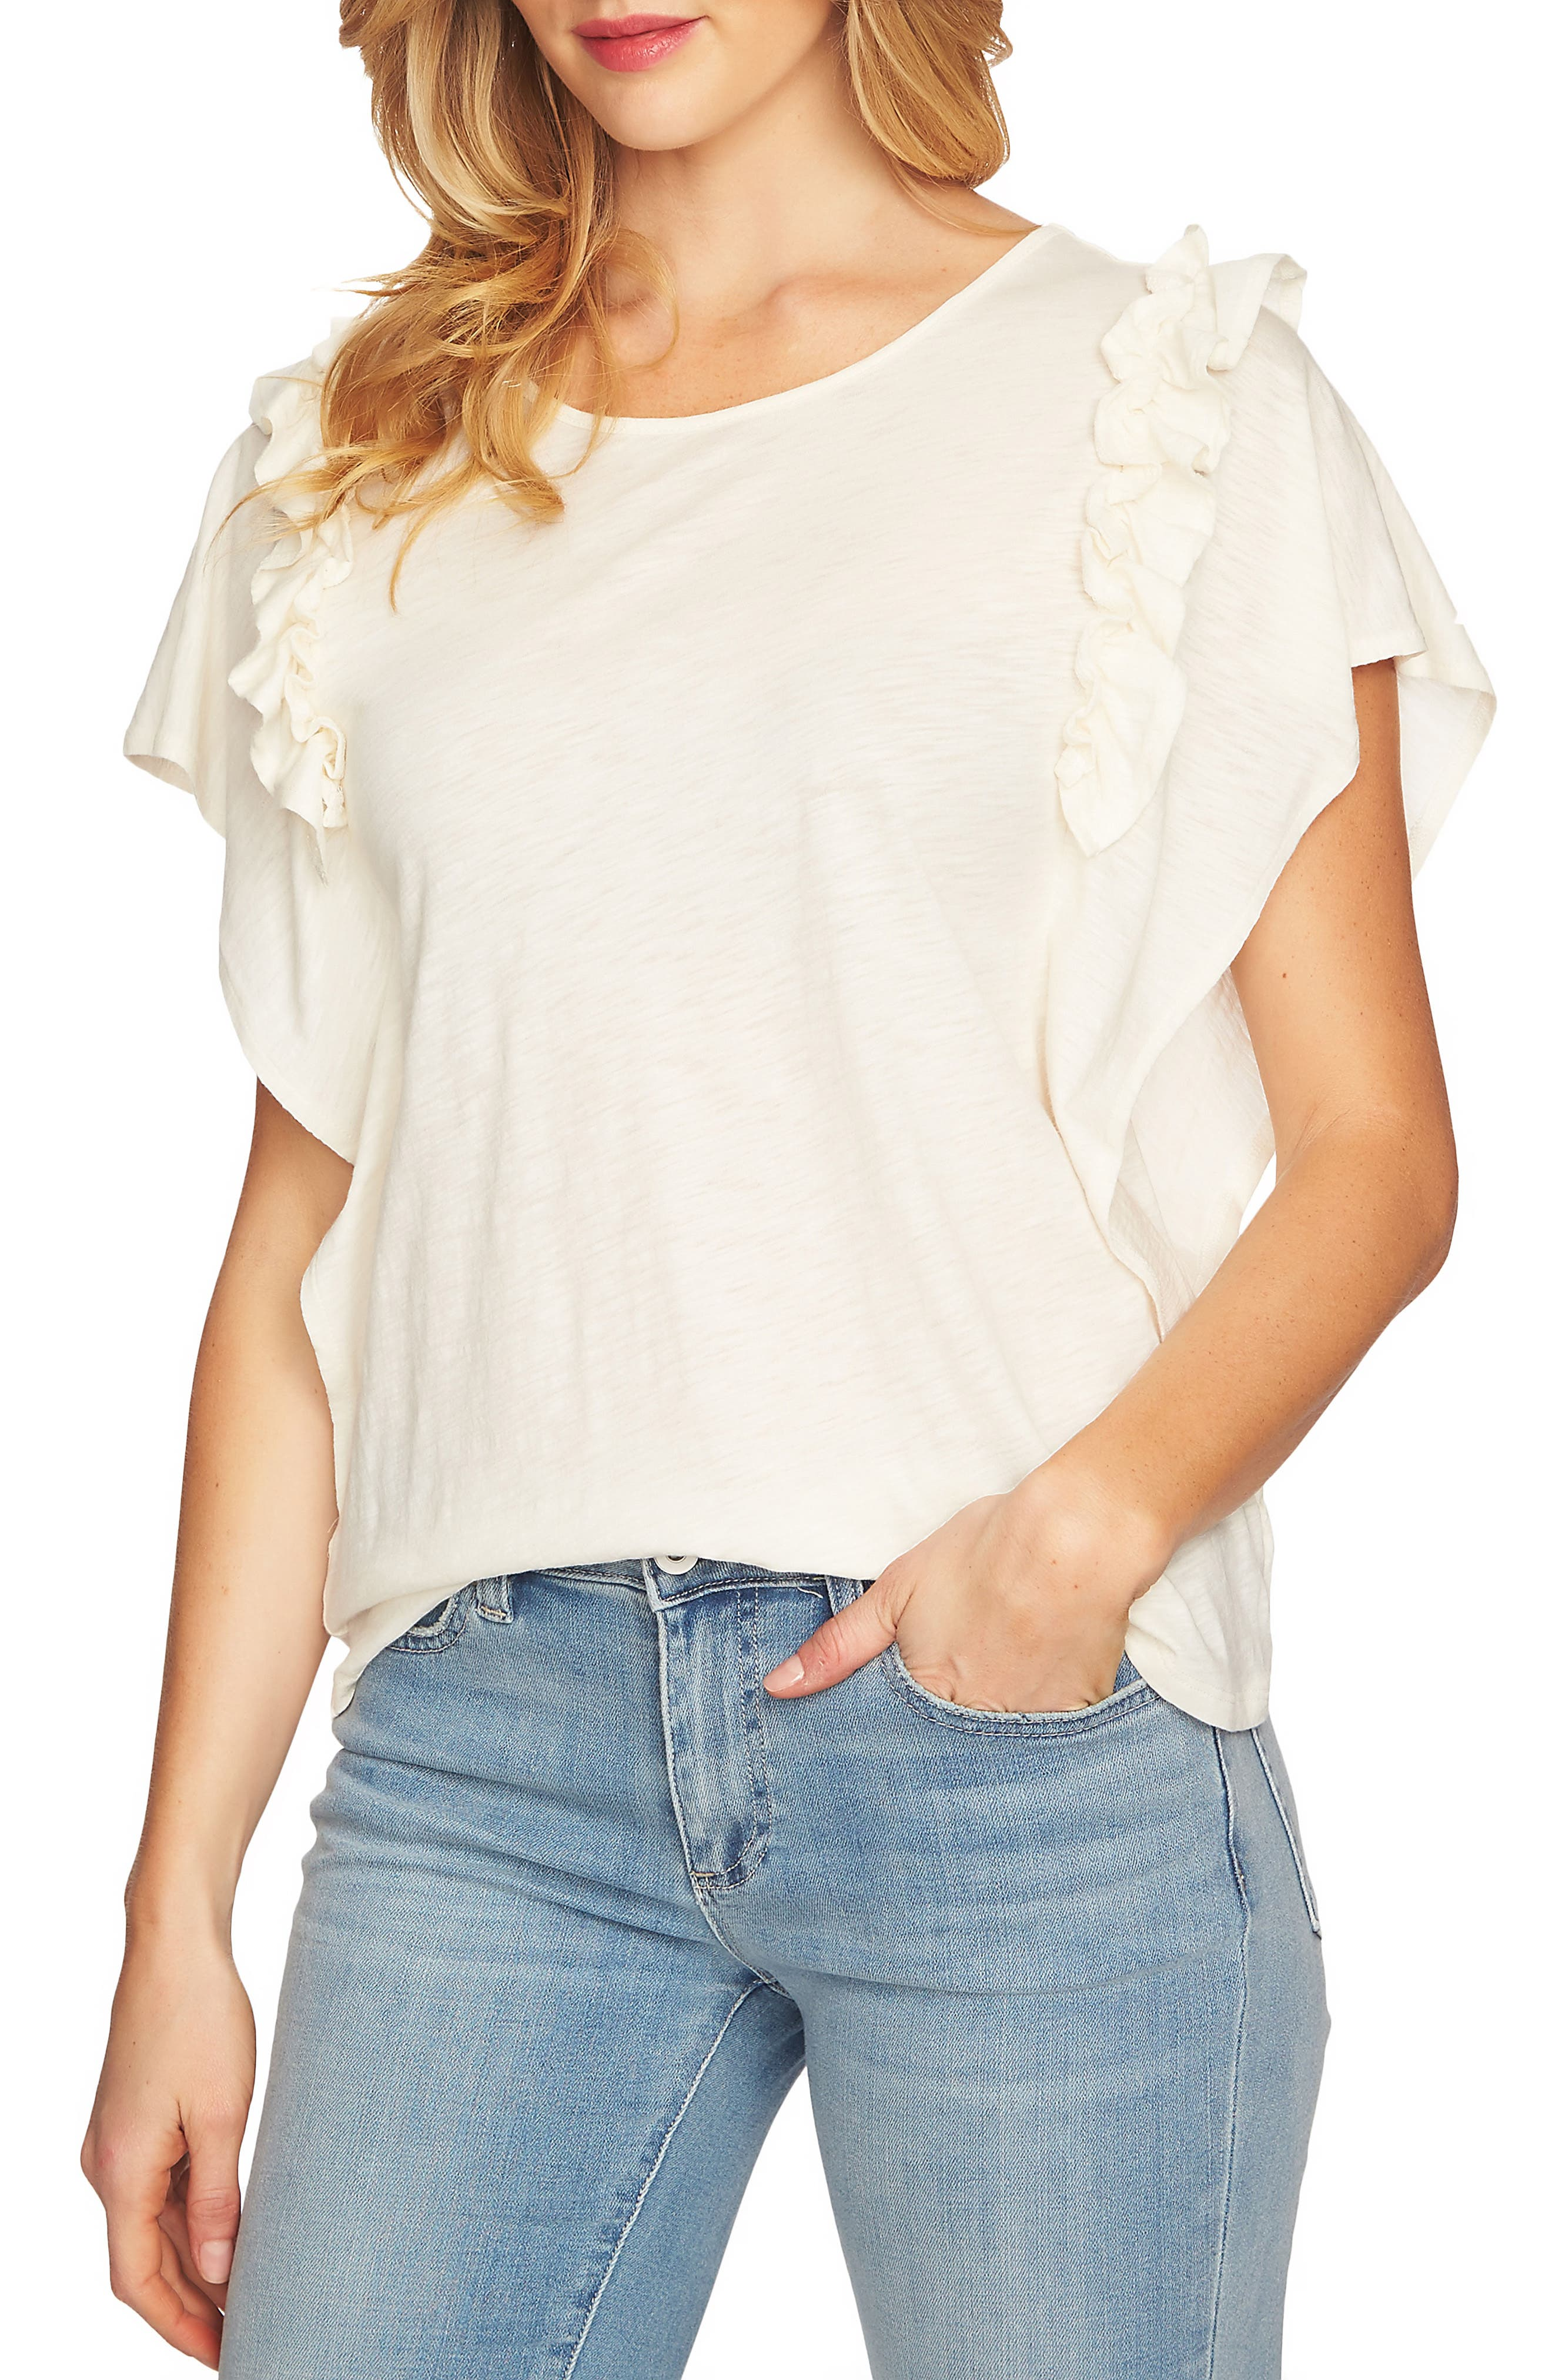 Ruffle Sleeve Top,                             Main thumbnail 1, color,                             Antique White